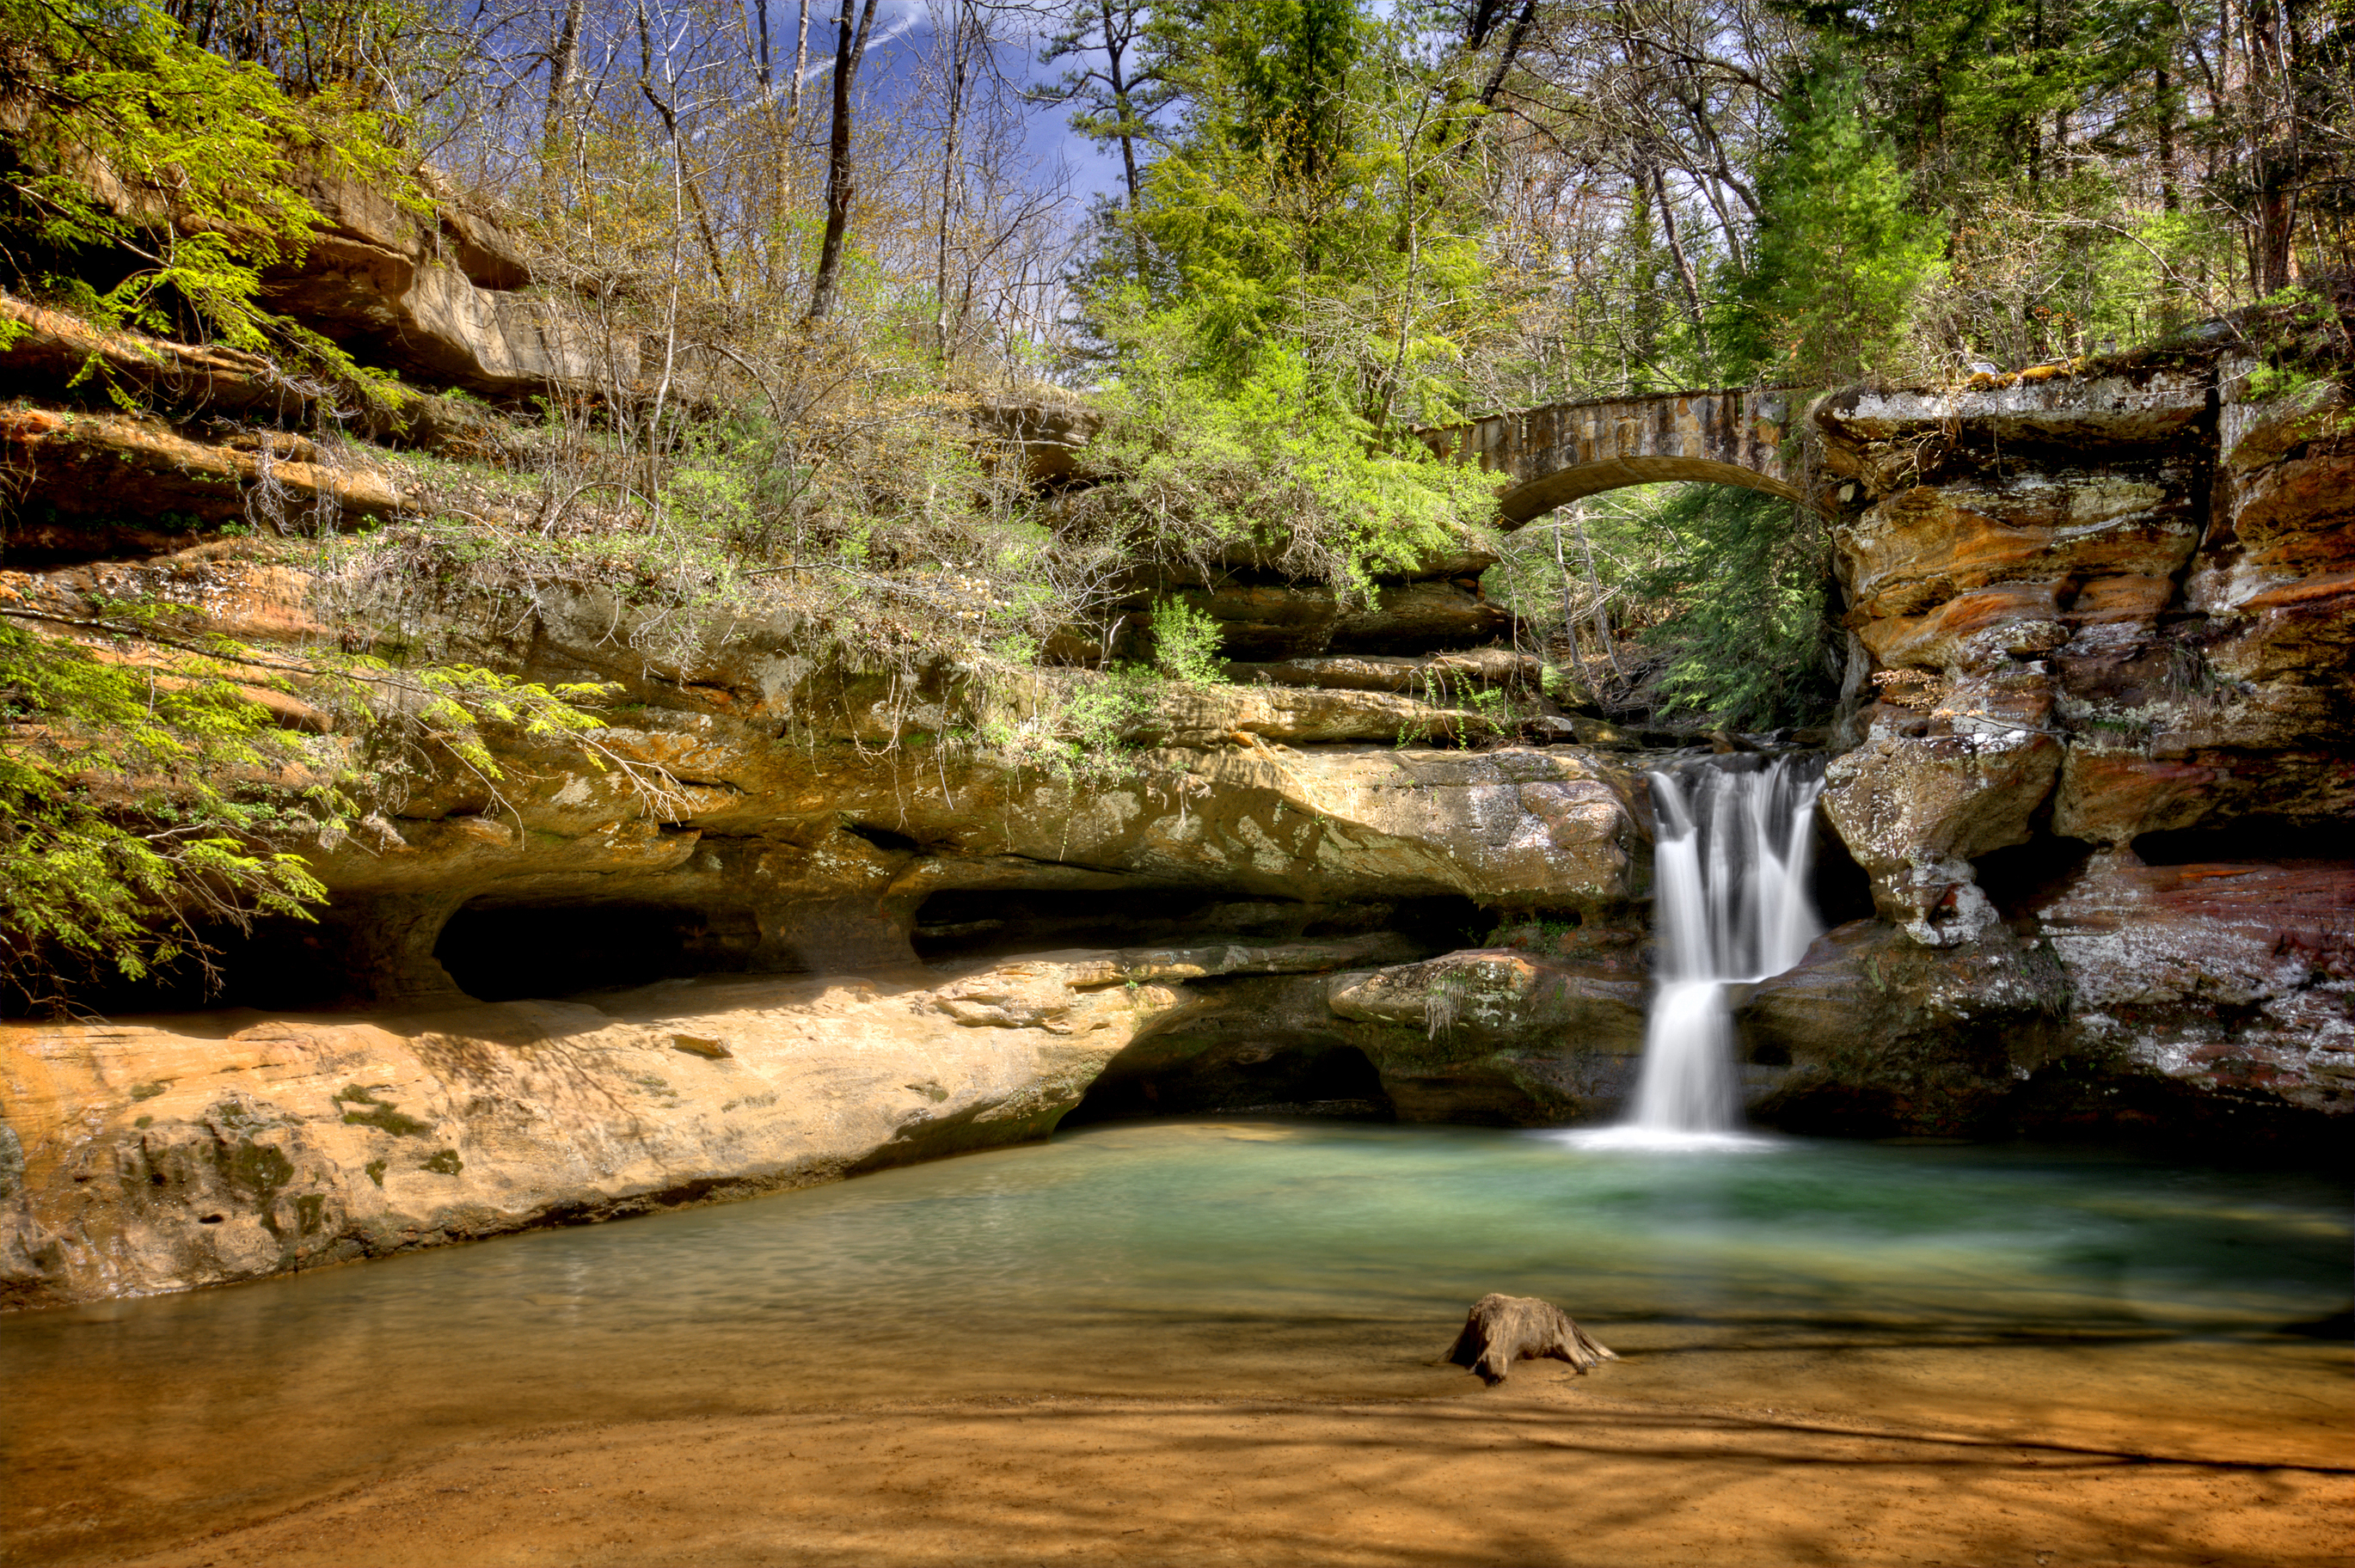 Ohio-HOCKING-HILLS-Lower-Falls-Old-Mans-Cave.jpg?mtime=20180412104200#asset:101407